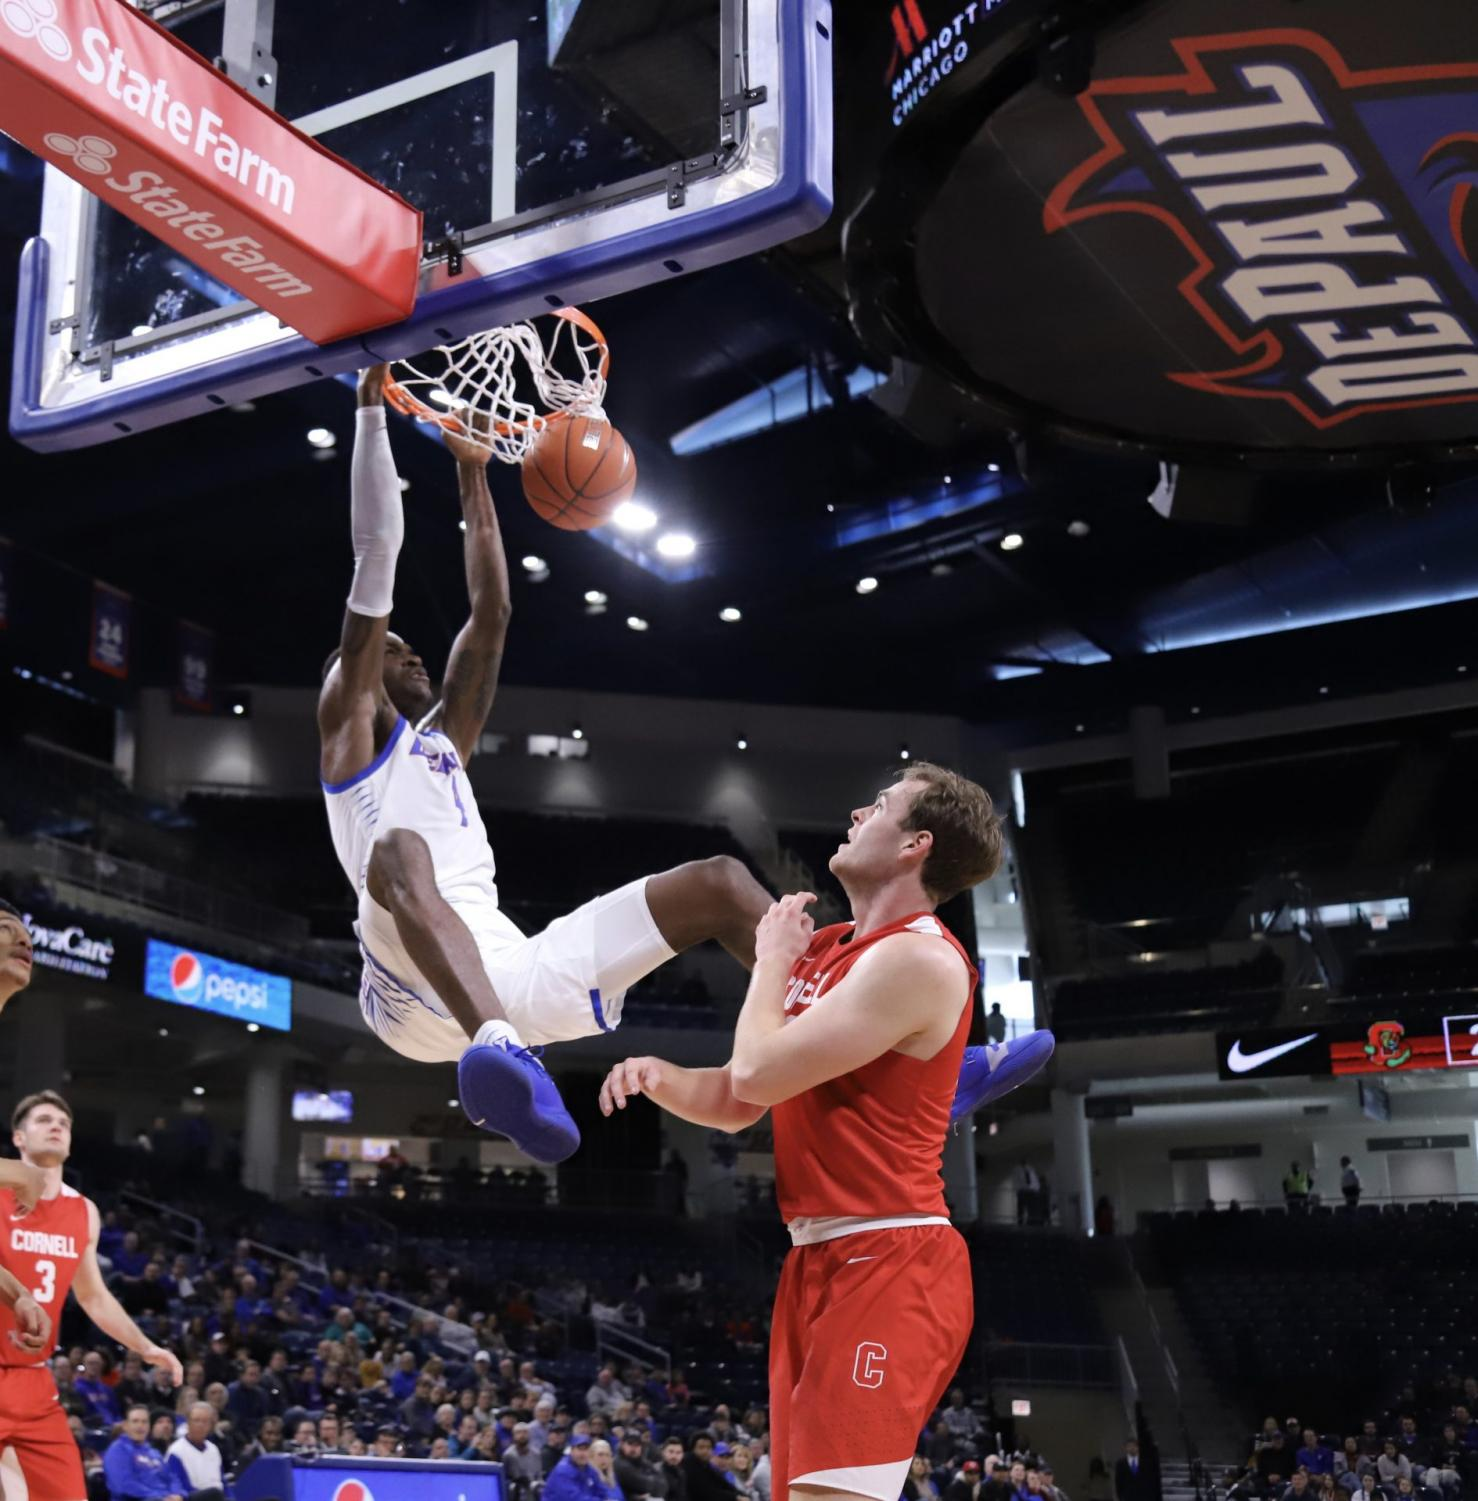 Exterior: Talent Carries Blue Demons To Strong Start